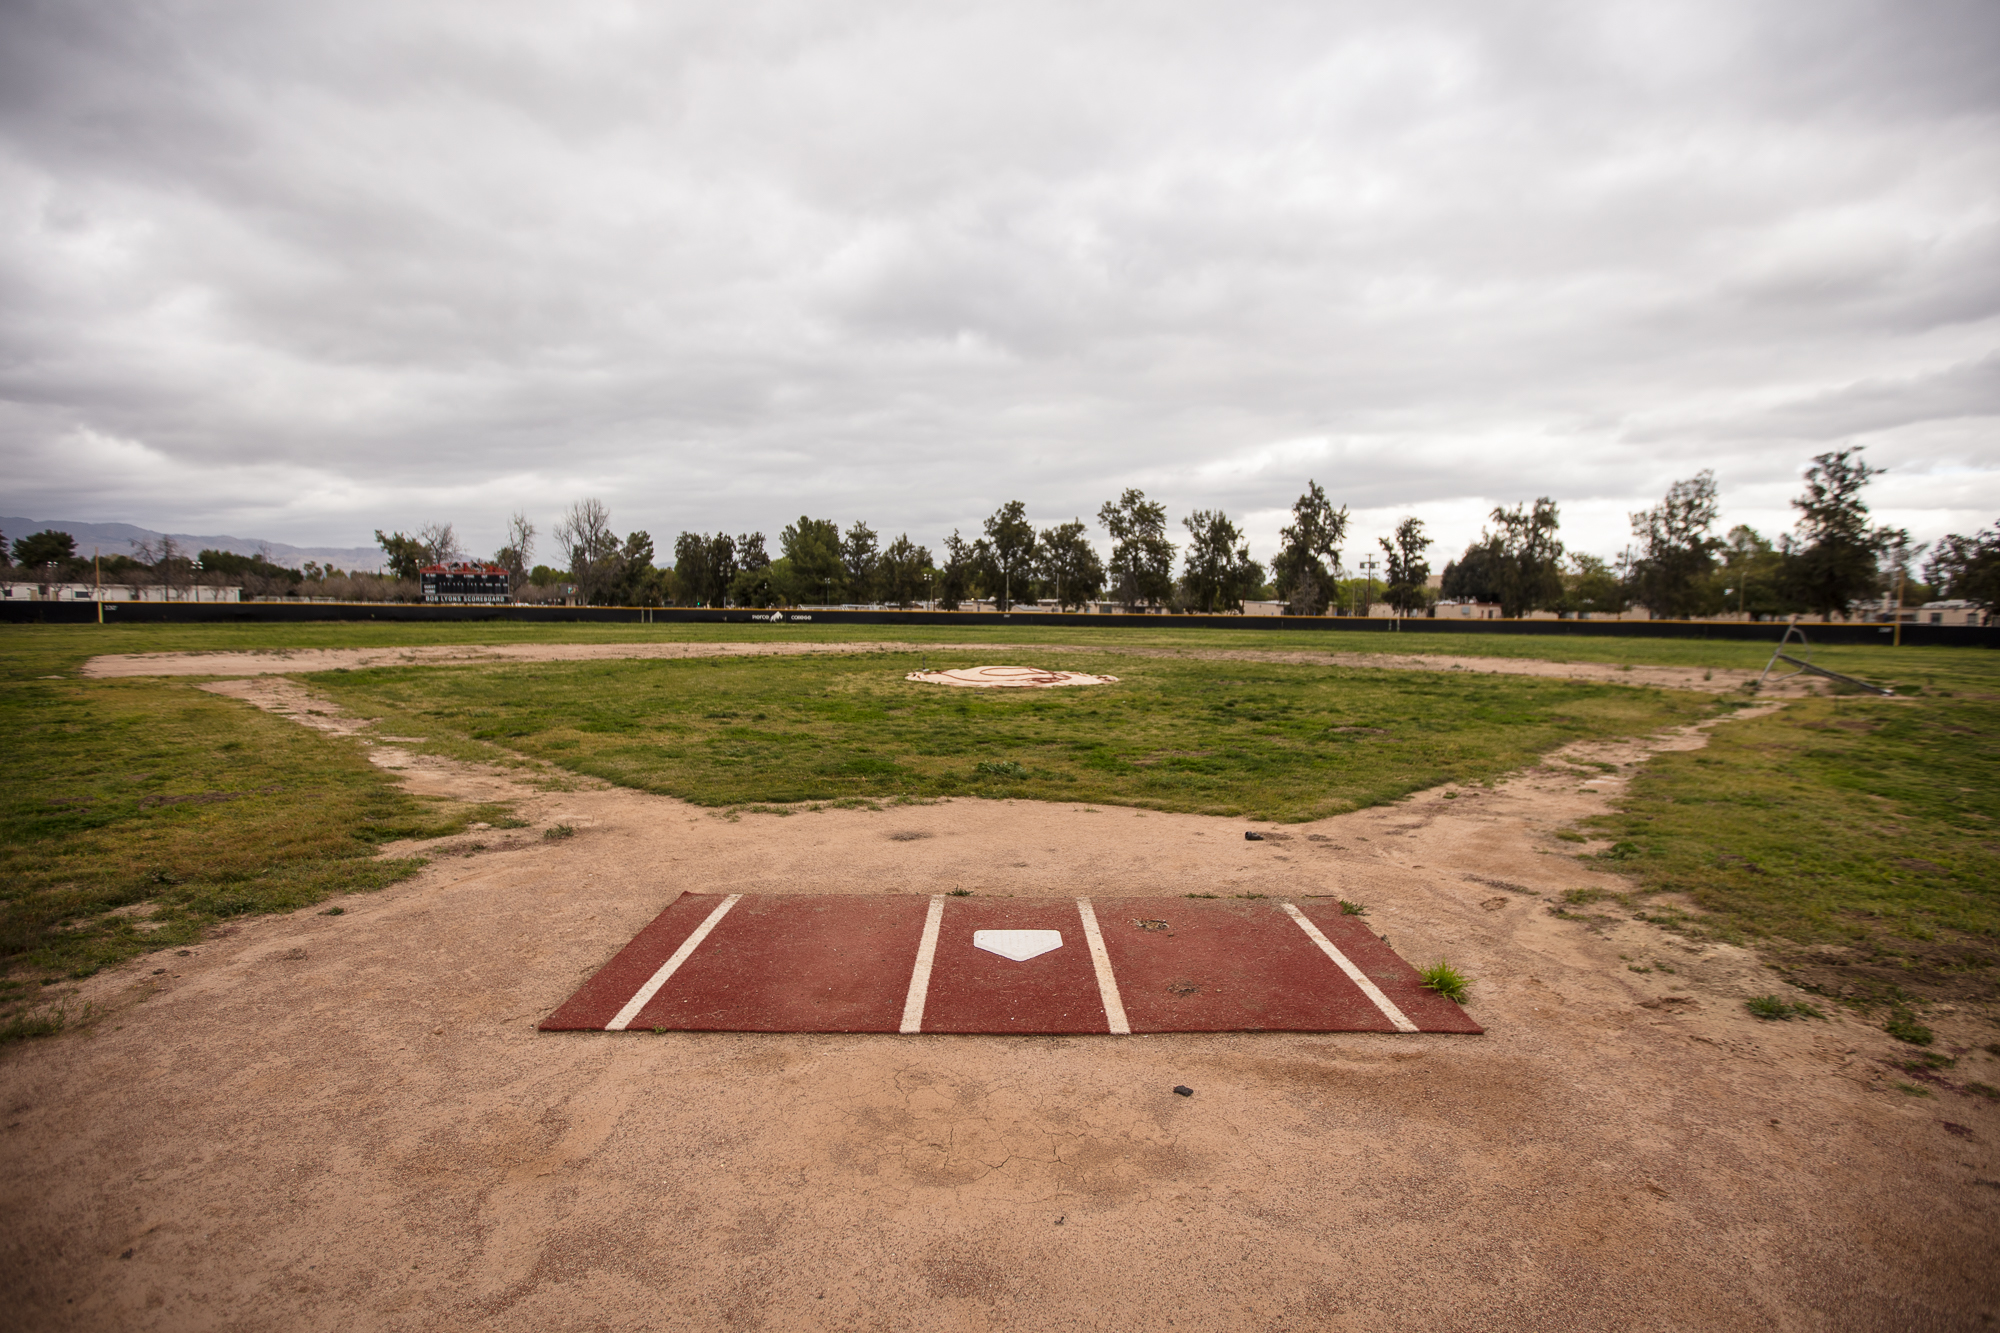 Abandoned field in need of a team